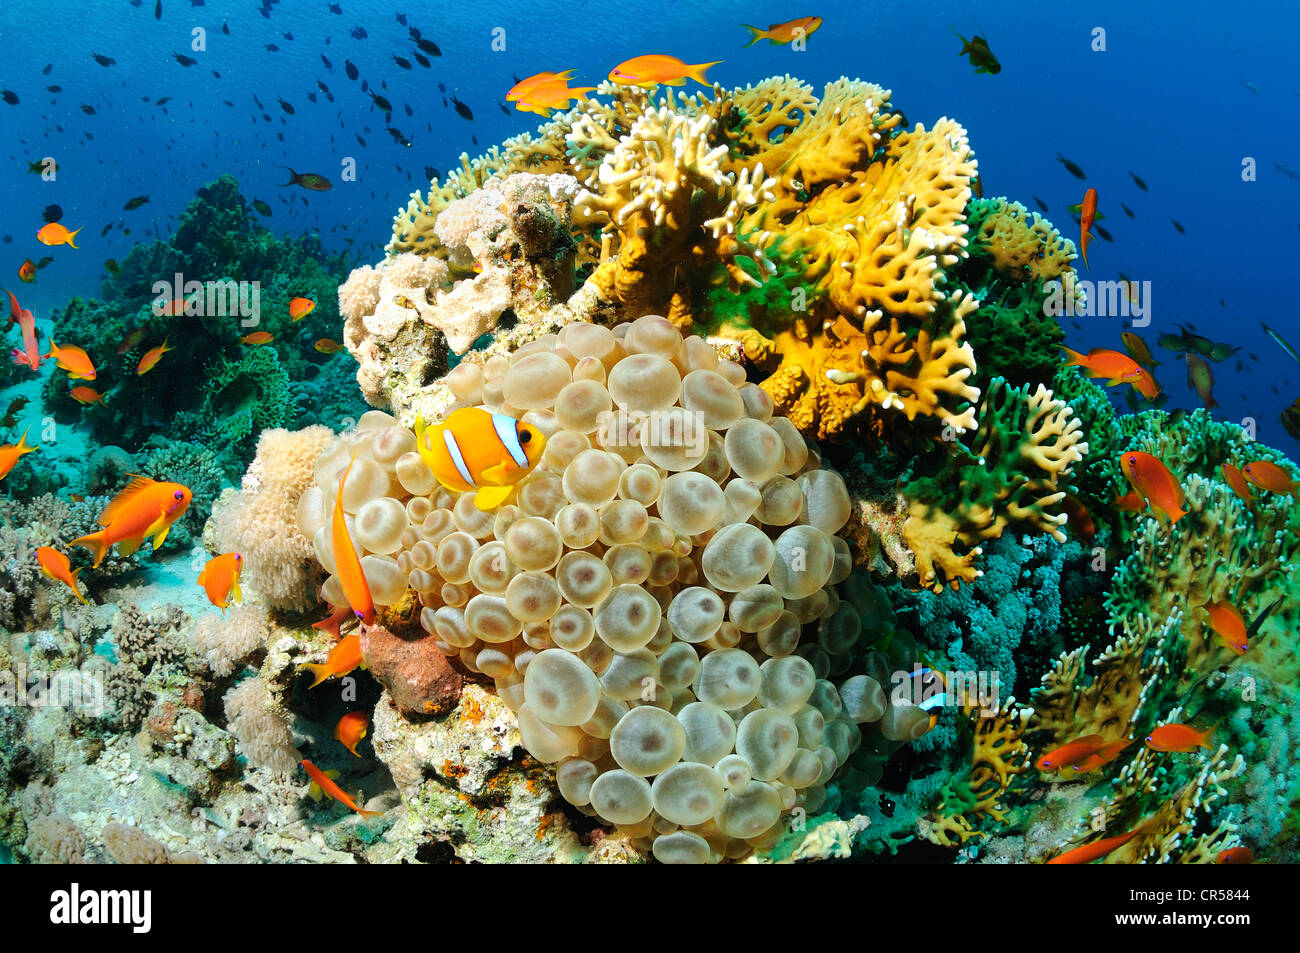 Egypte, mer Roiuge, a clownfish (Amphiprion bicinctus) and a sea anemone - Stock Image